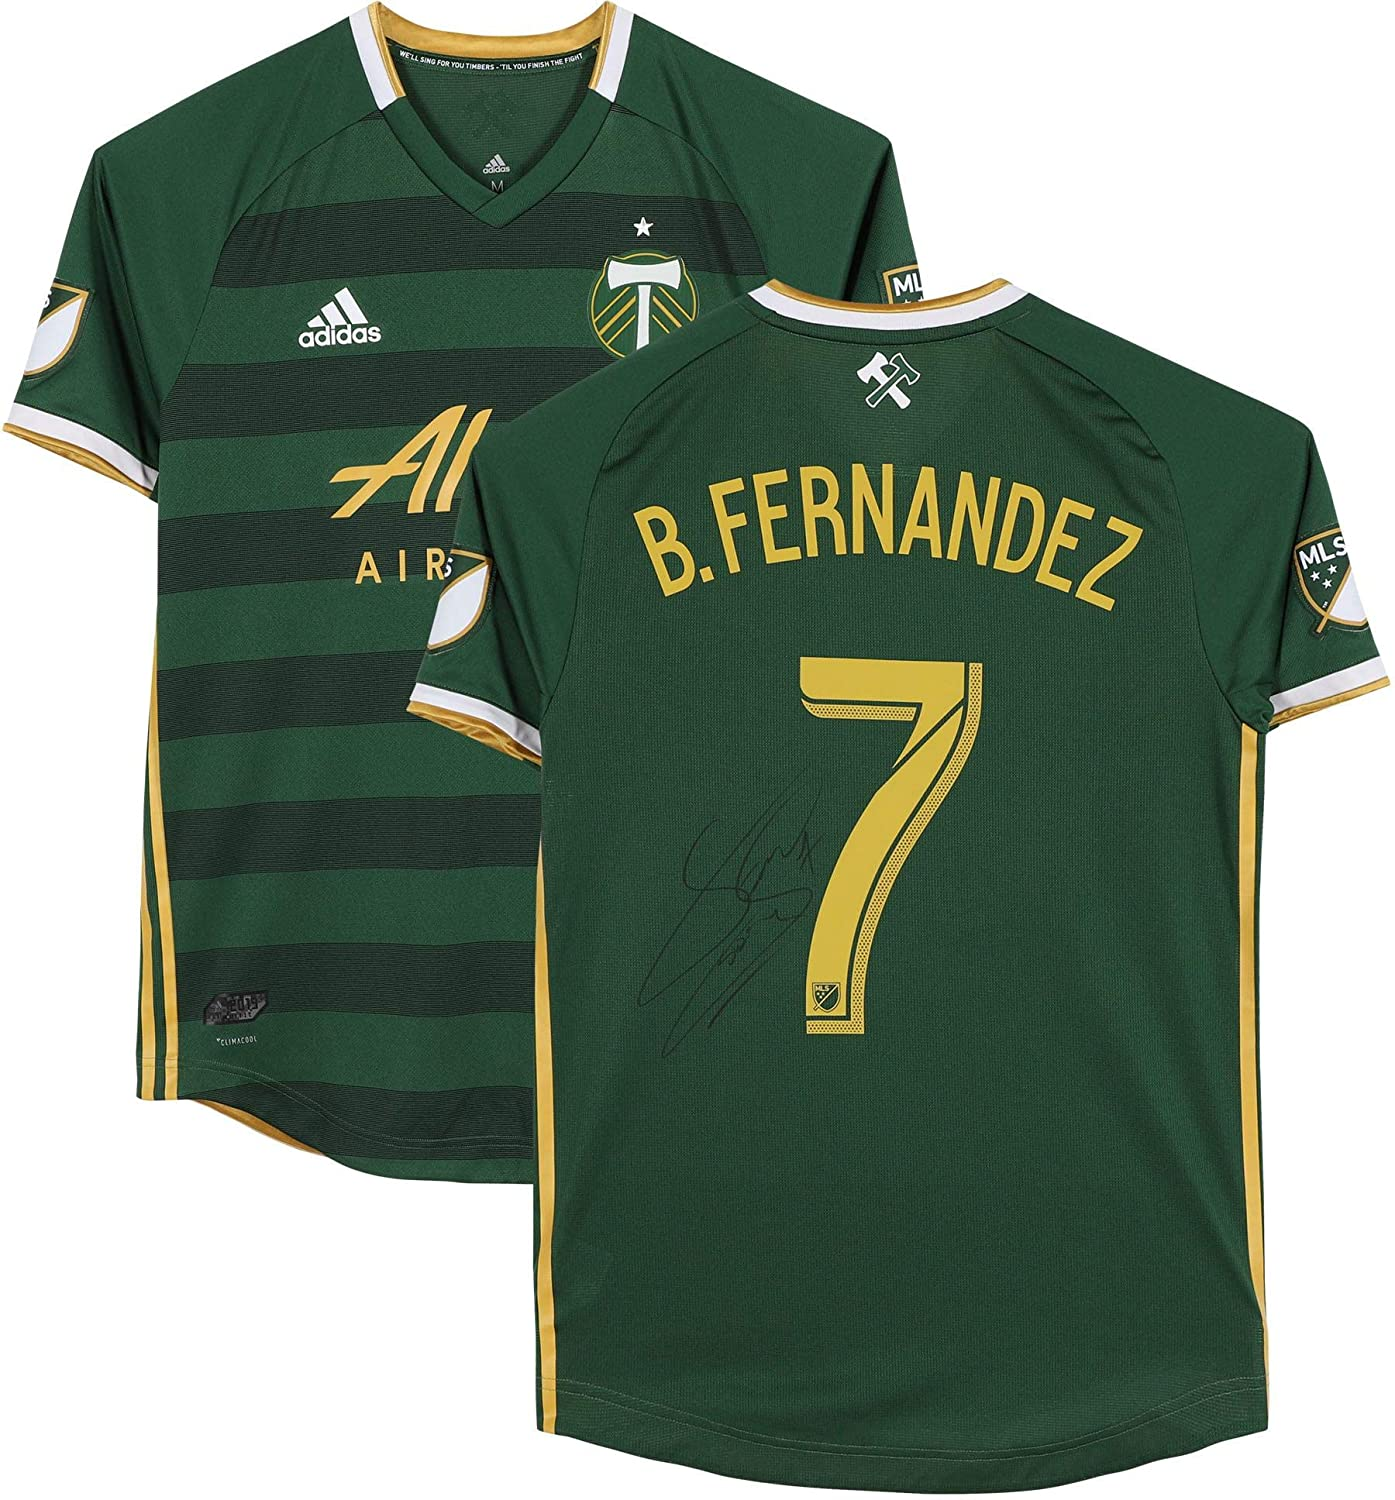 Brian Fernandez Portland Timbers Autographed Match-Used #7 Green Jersey from the 2019 MLS Season - Fanatics Authentic Certified